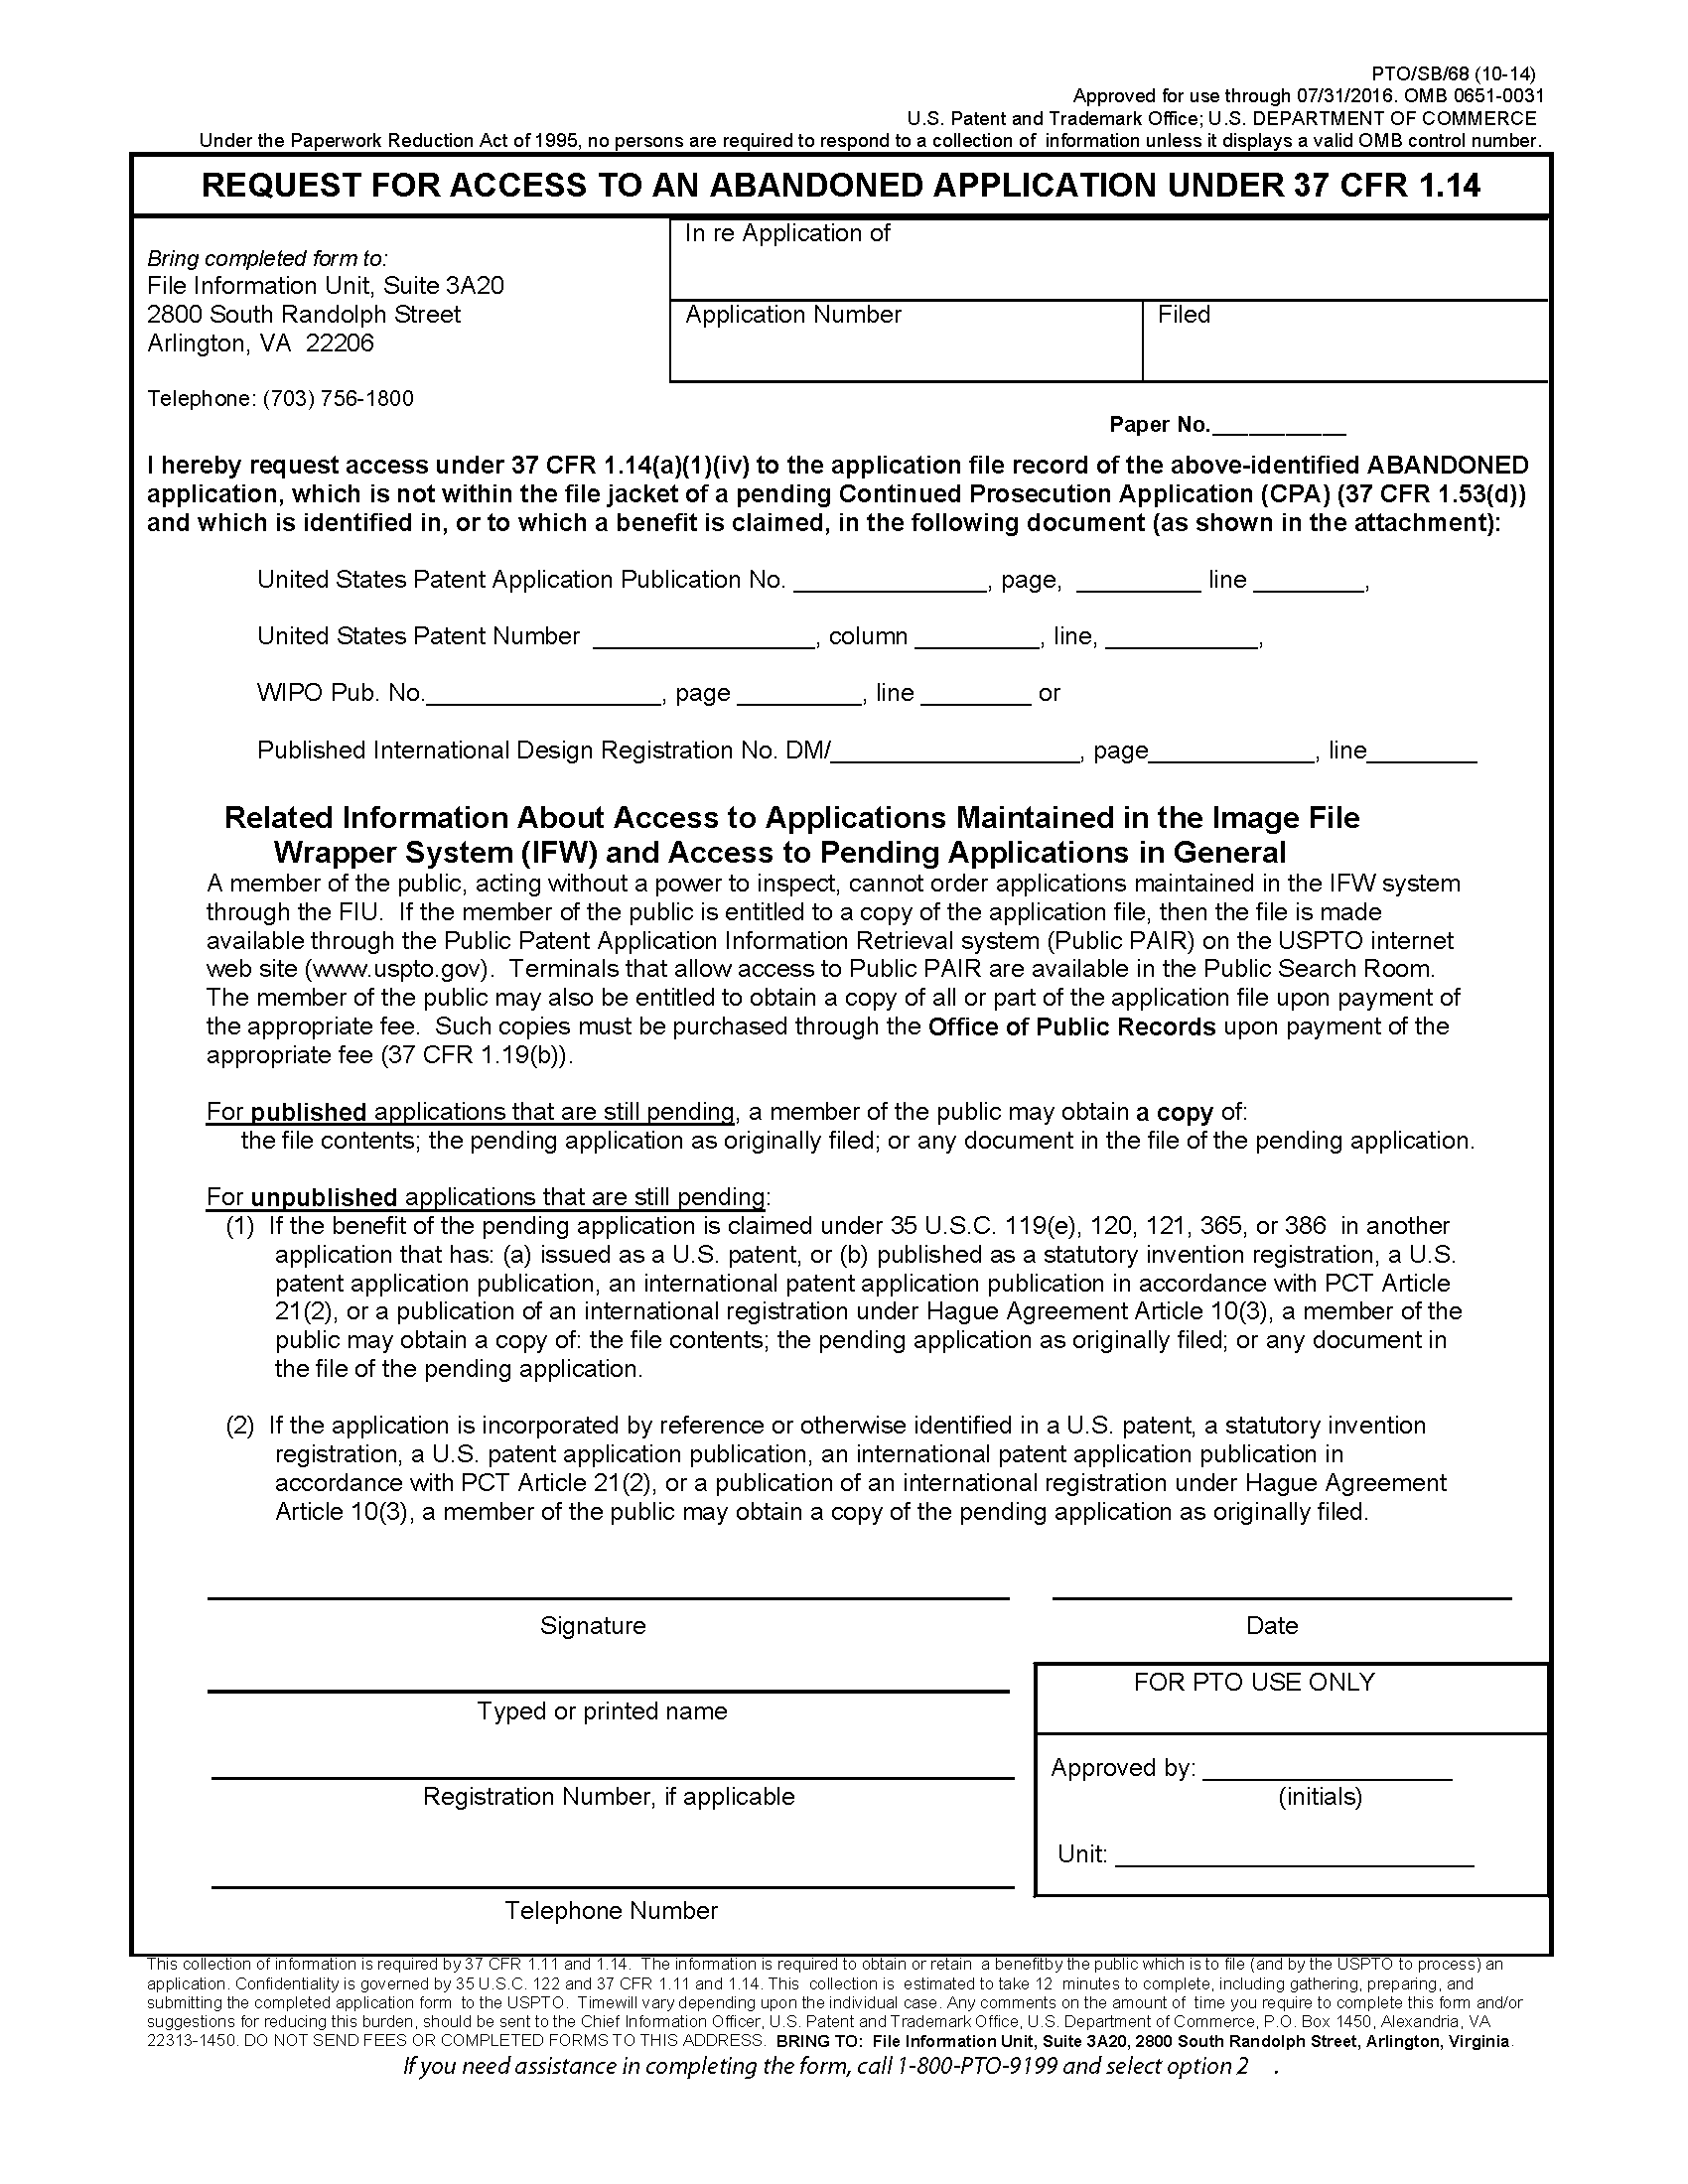 provisional patent template uspto - 103 right of public to inspect patent files and some